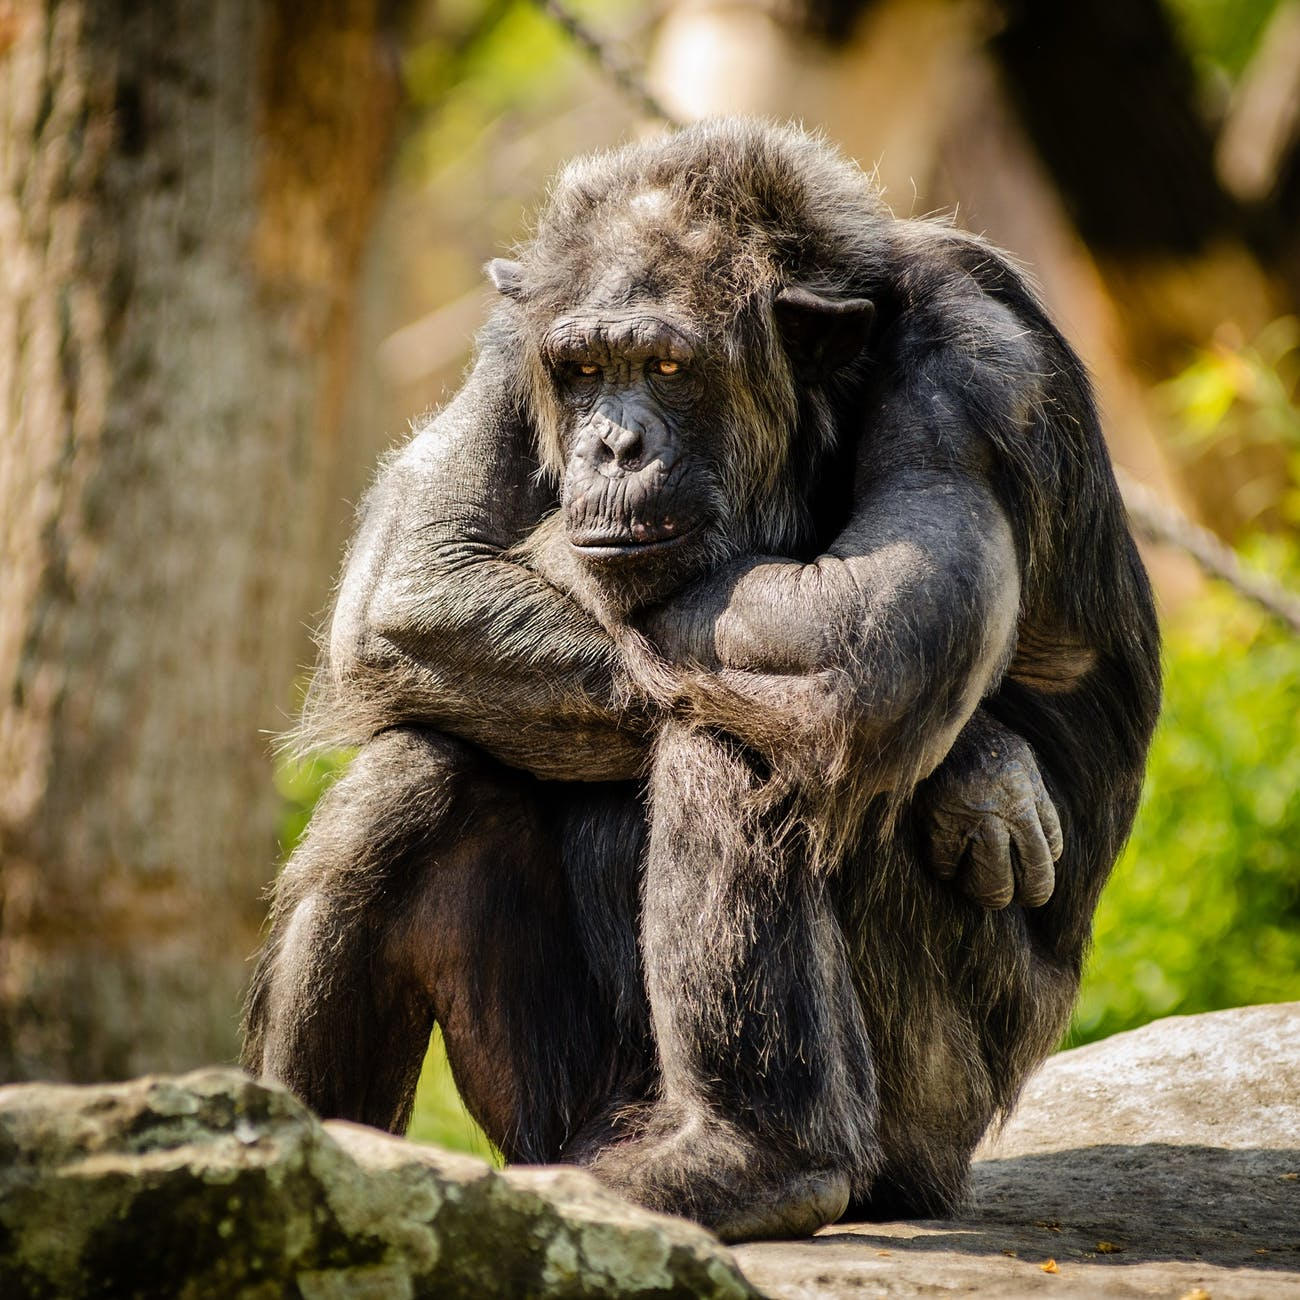 """NYU Professor Jeff Sebo believes that chimpanzees deserve to be classified under the law as more than just """"things"""" because of features they possess """"such as conscious experience which are widely shared on the phylogenetic tree, which many non-human animals have, independently of how intelligent they happen to be or how similar to humans they happen to be."""""""